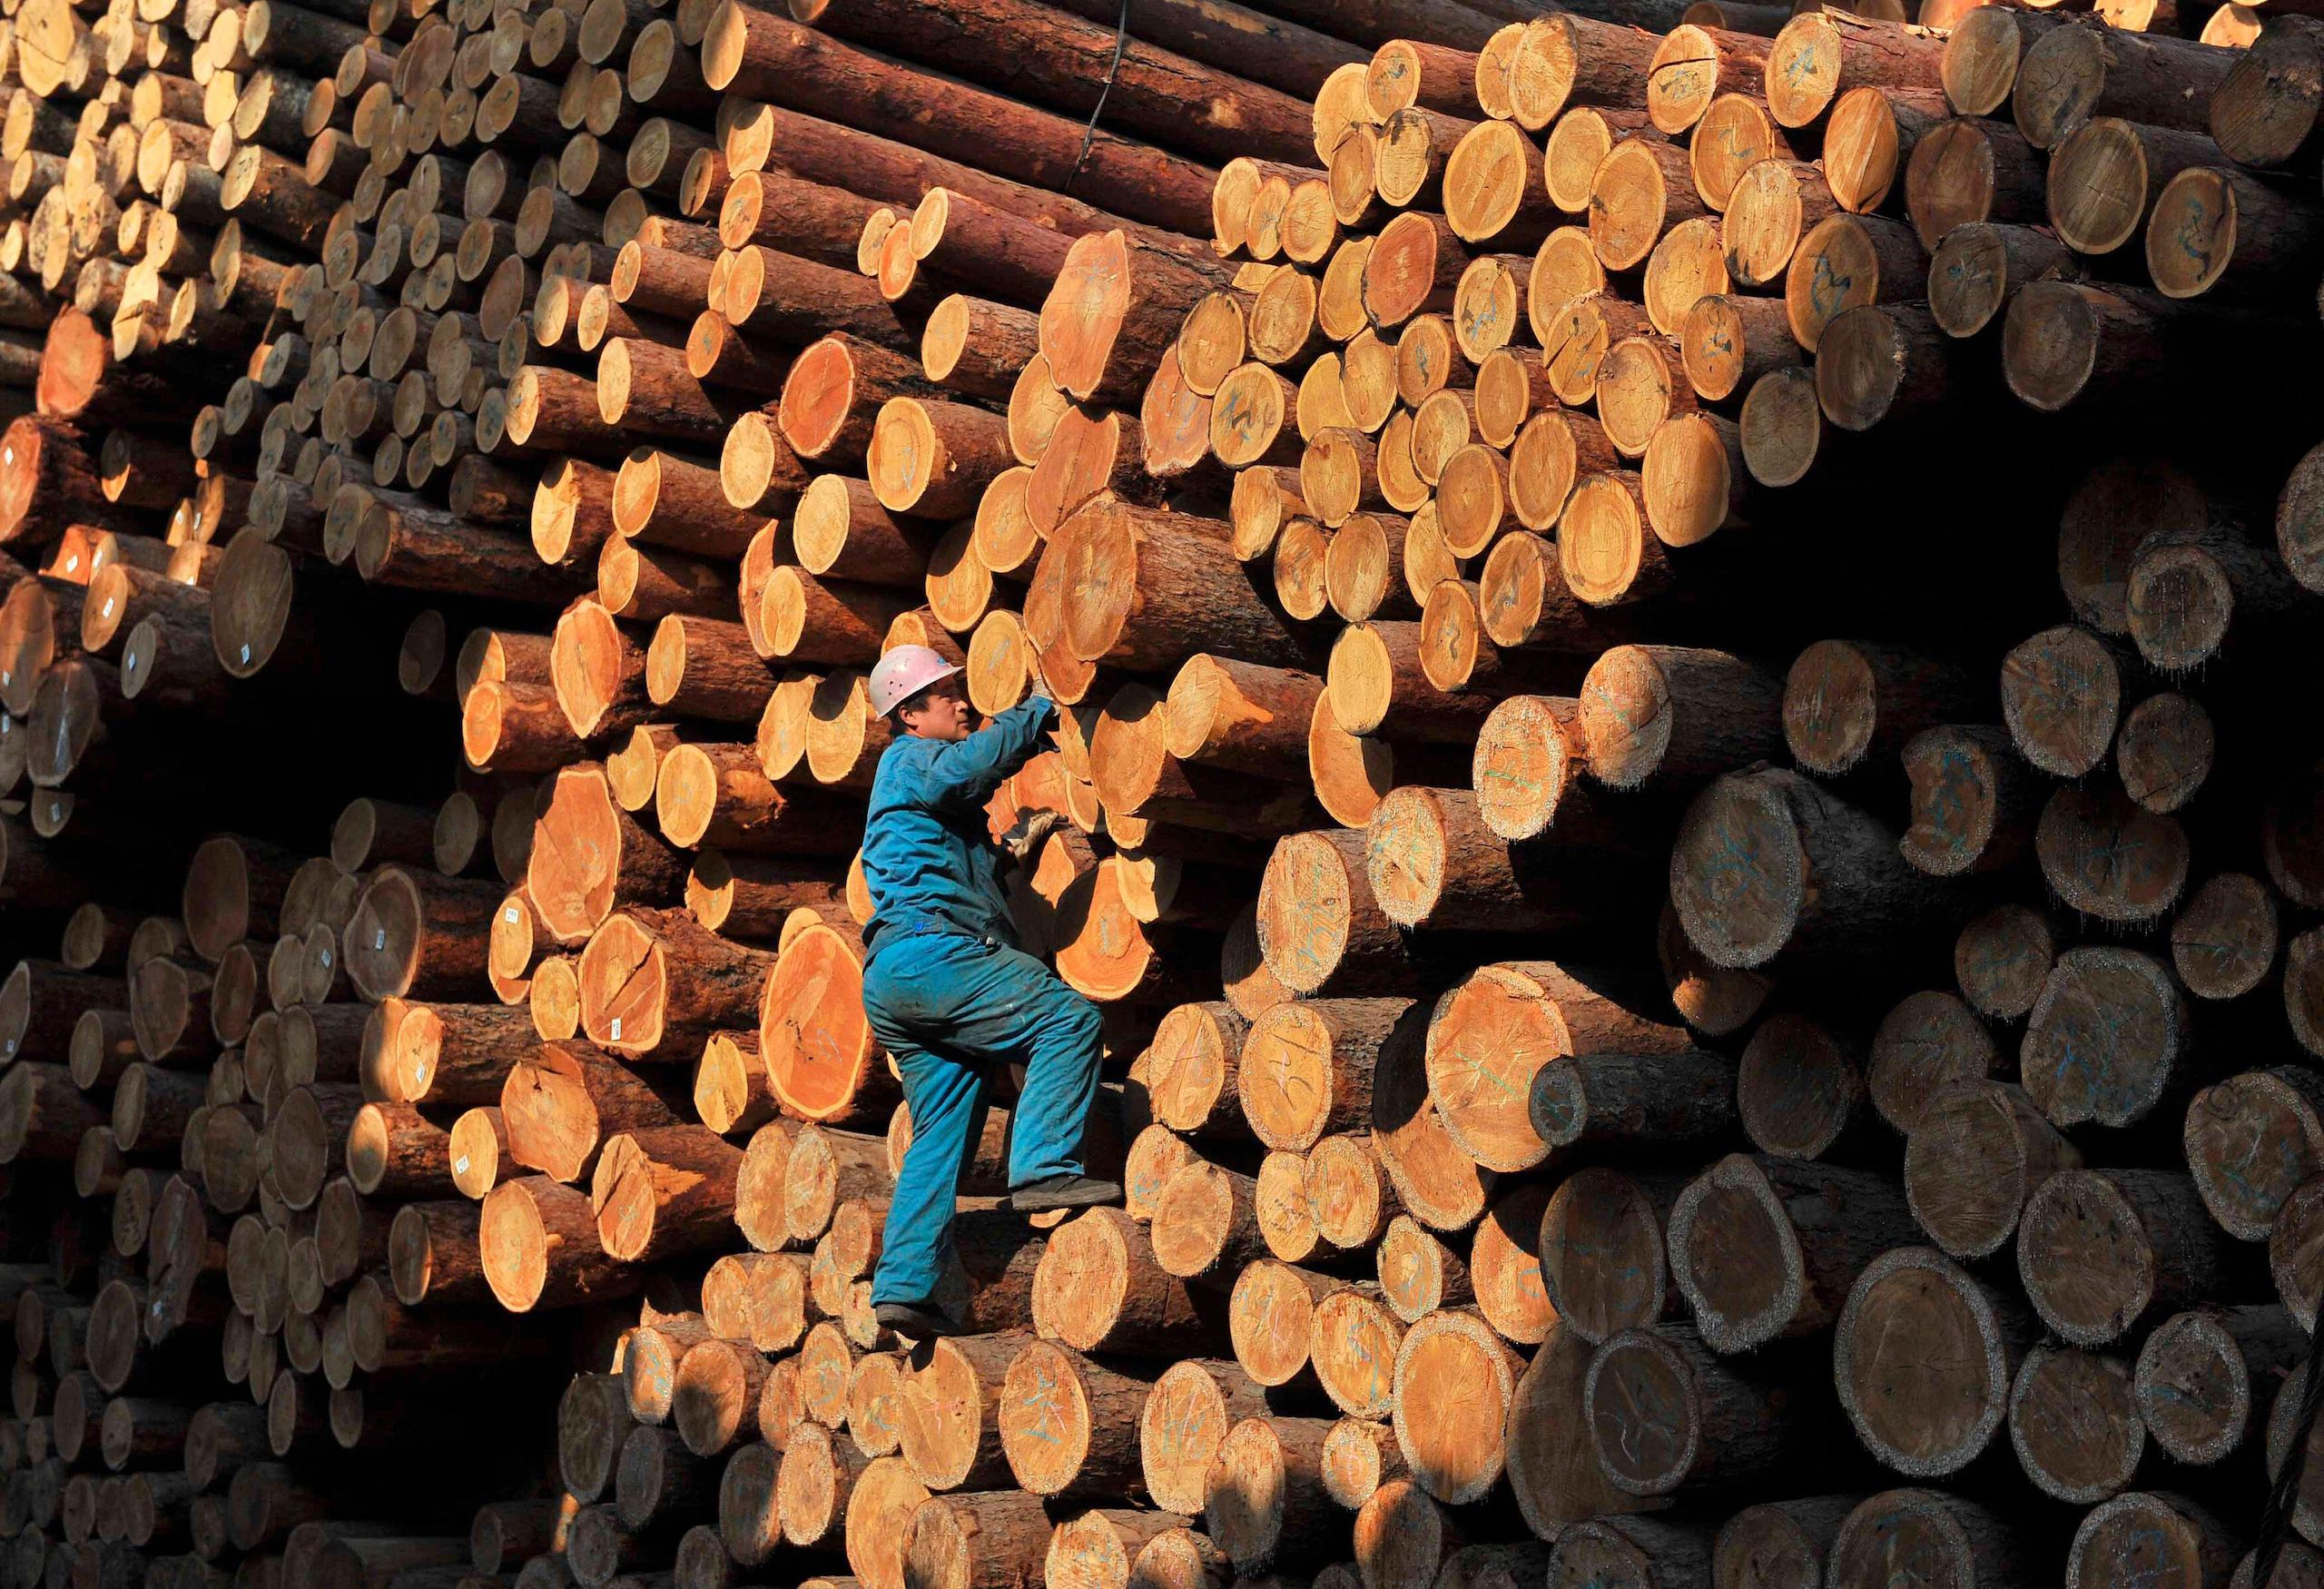 A worker climbs on piles of logs at a timber storage in Shenyang, Liaoning provinc